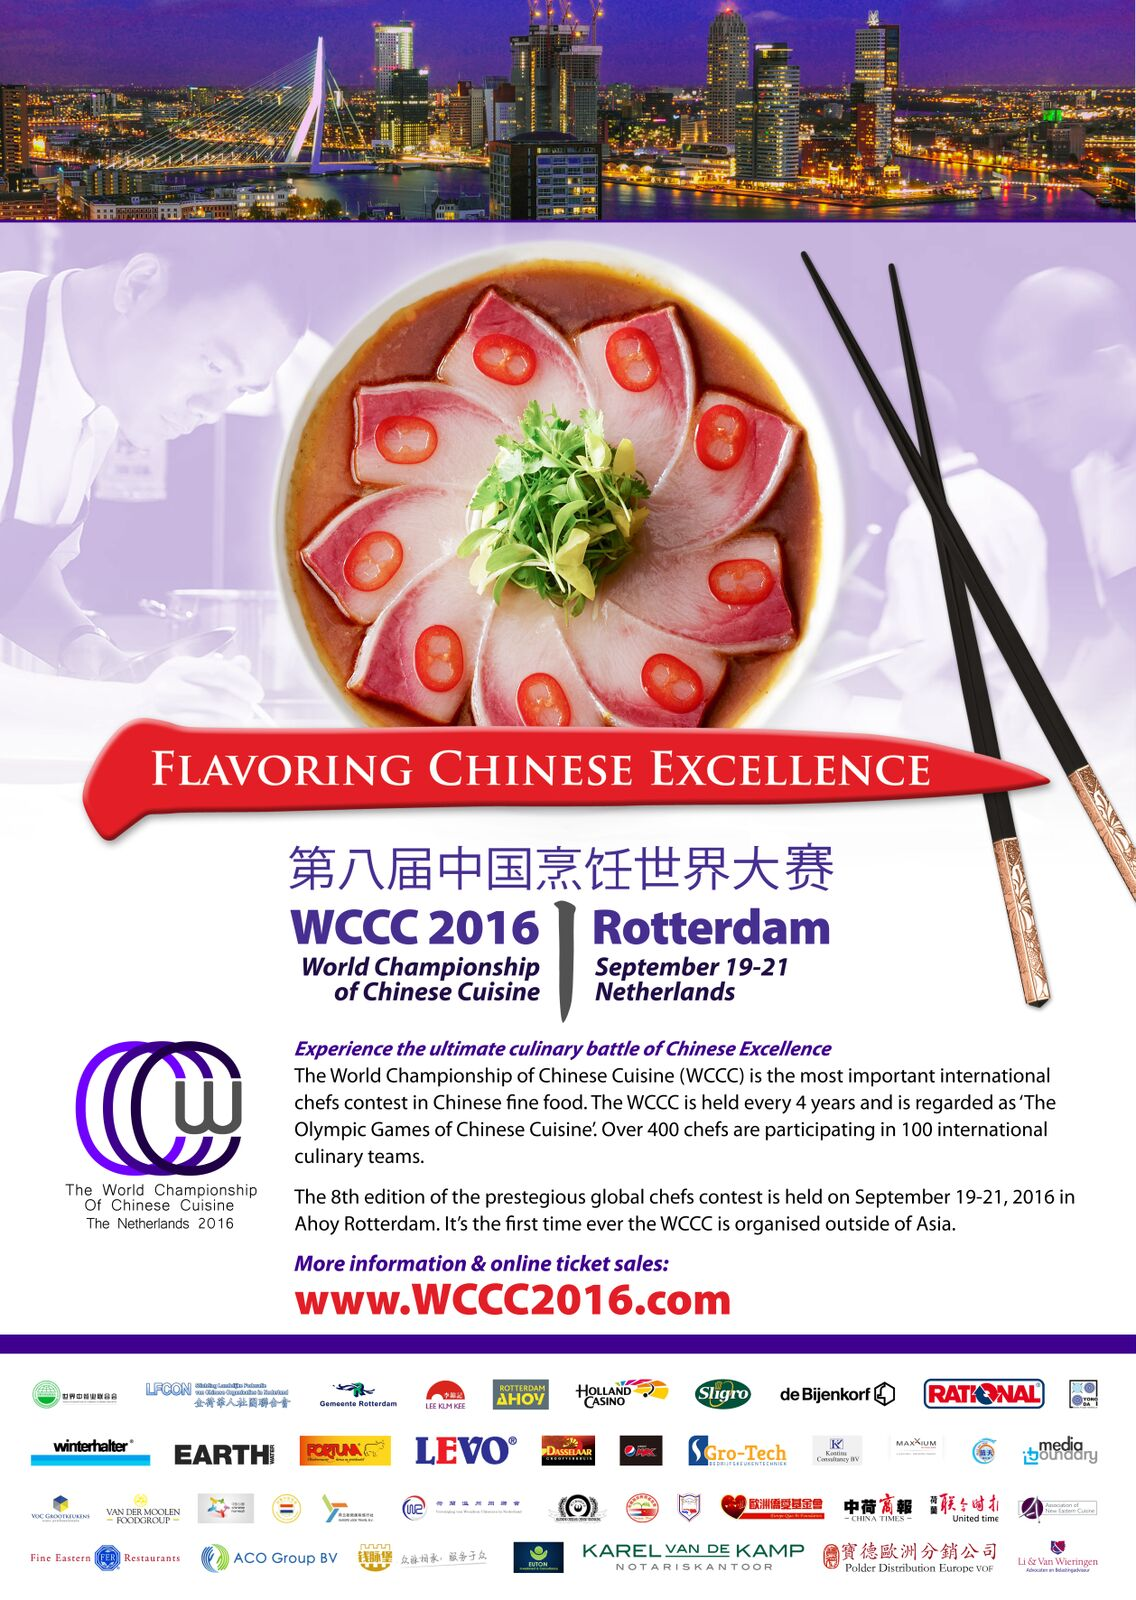 WCCC 2016